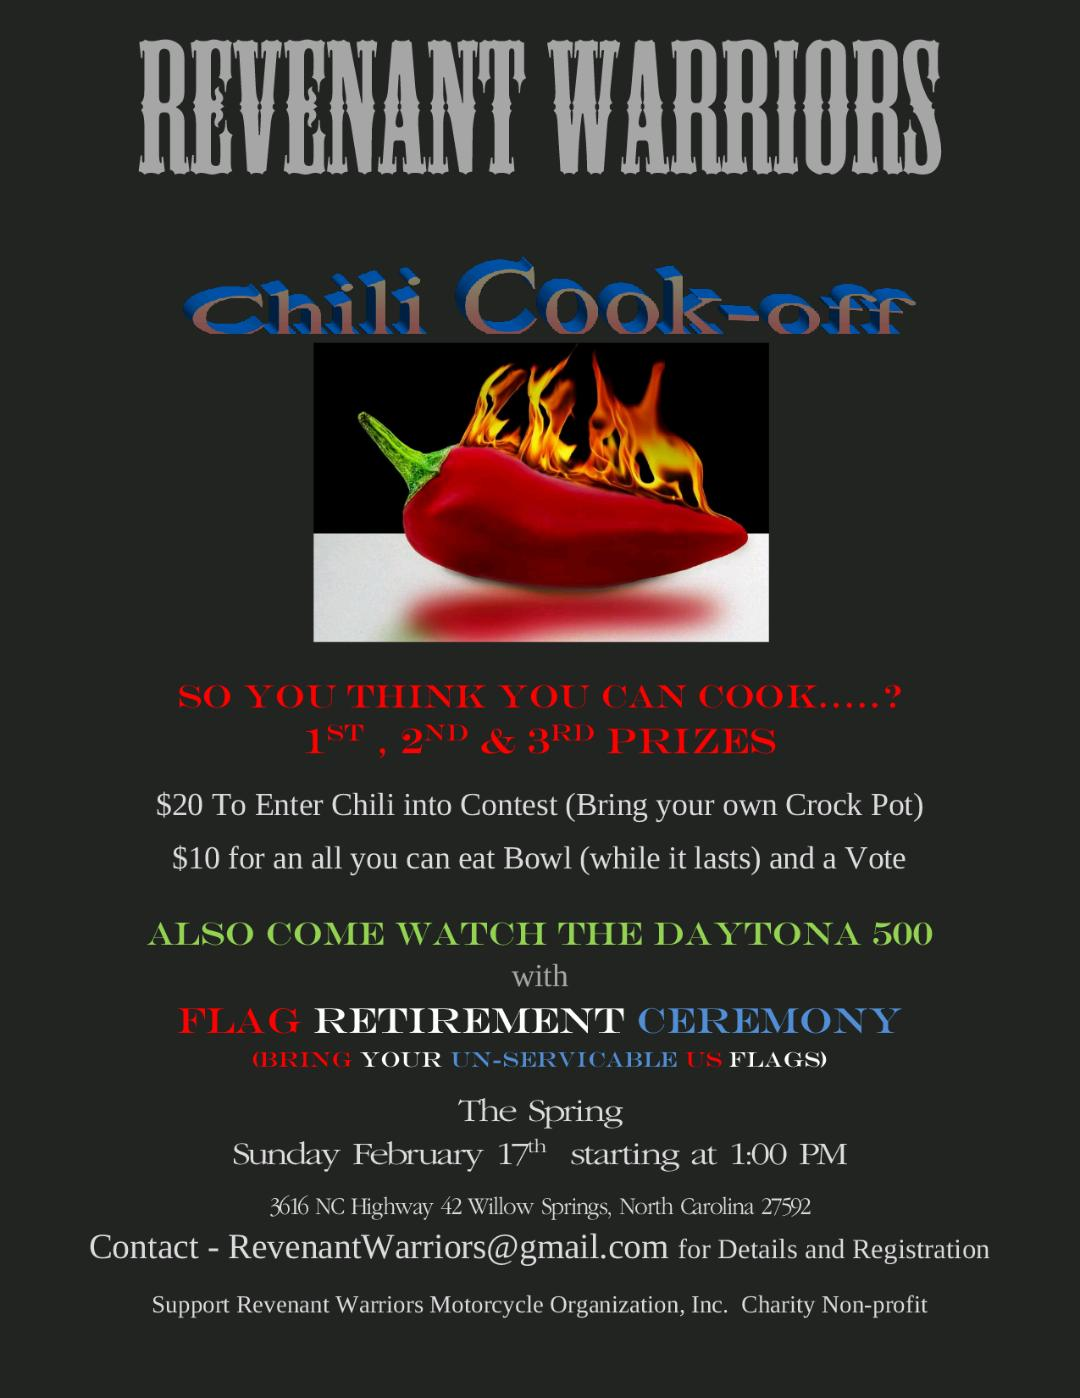 Revenant Warriors.Chili.Cookoff.2019.02.17.png